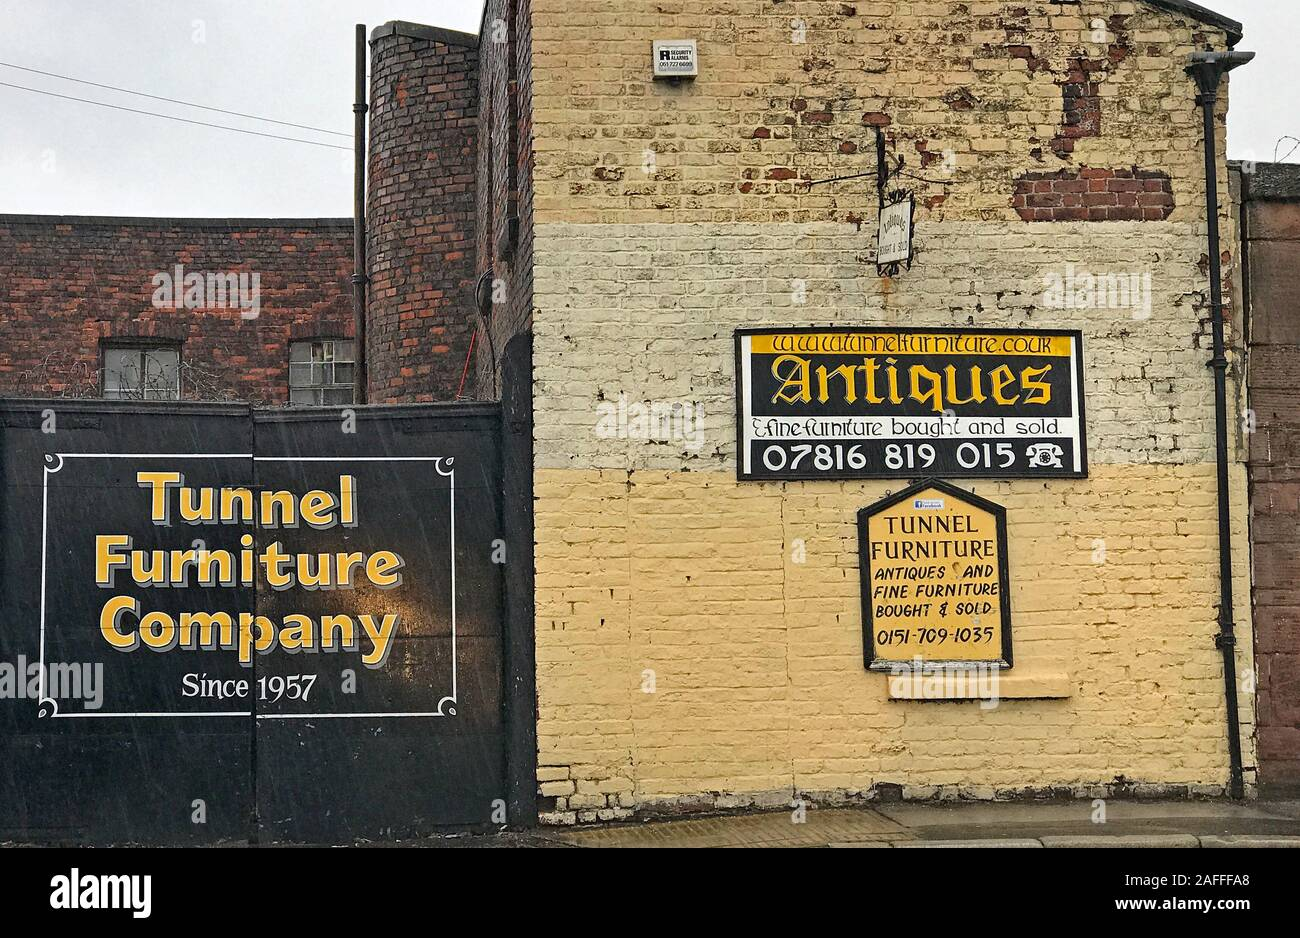 Dieses Stockfoto: The Tunnel Furniture Company, 46 Tunnel Rd, Edge Hill, Liverpool, Merseyside, England, UK, L7 6NG - 2AFFFA